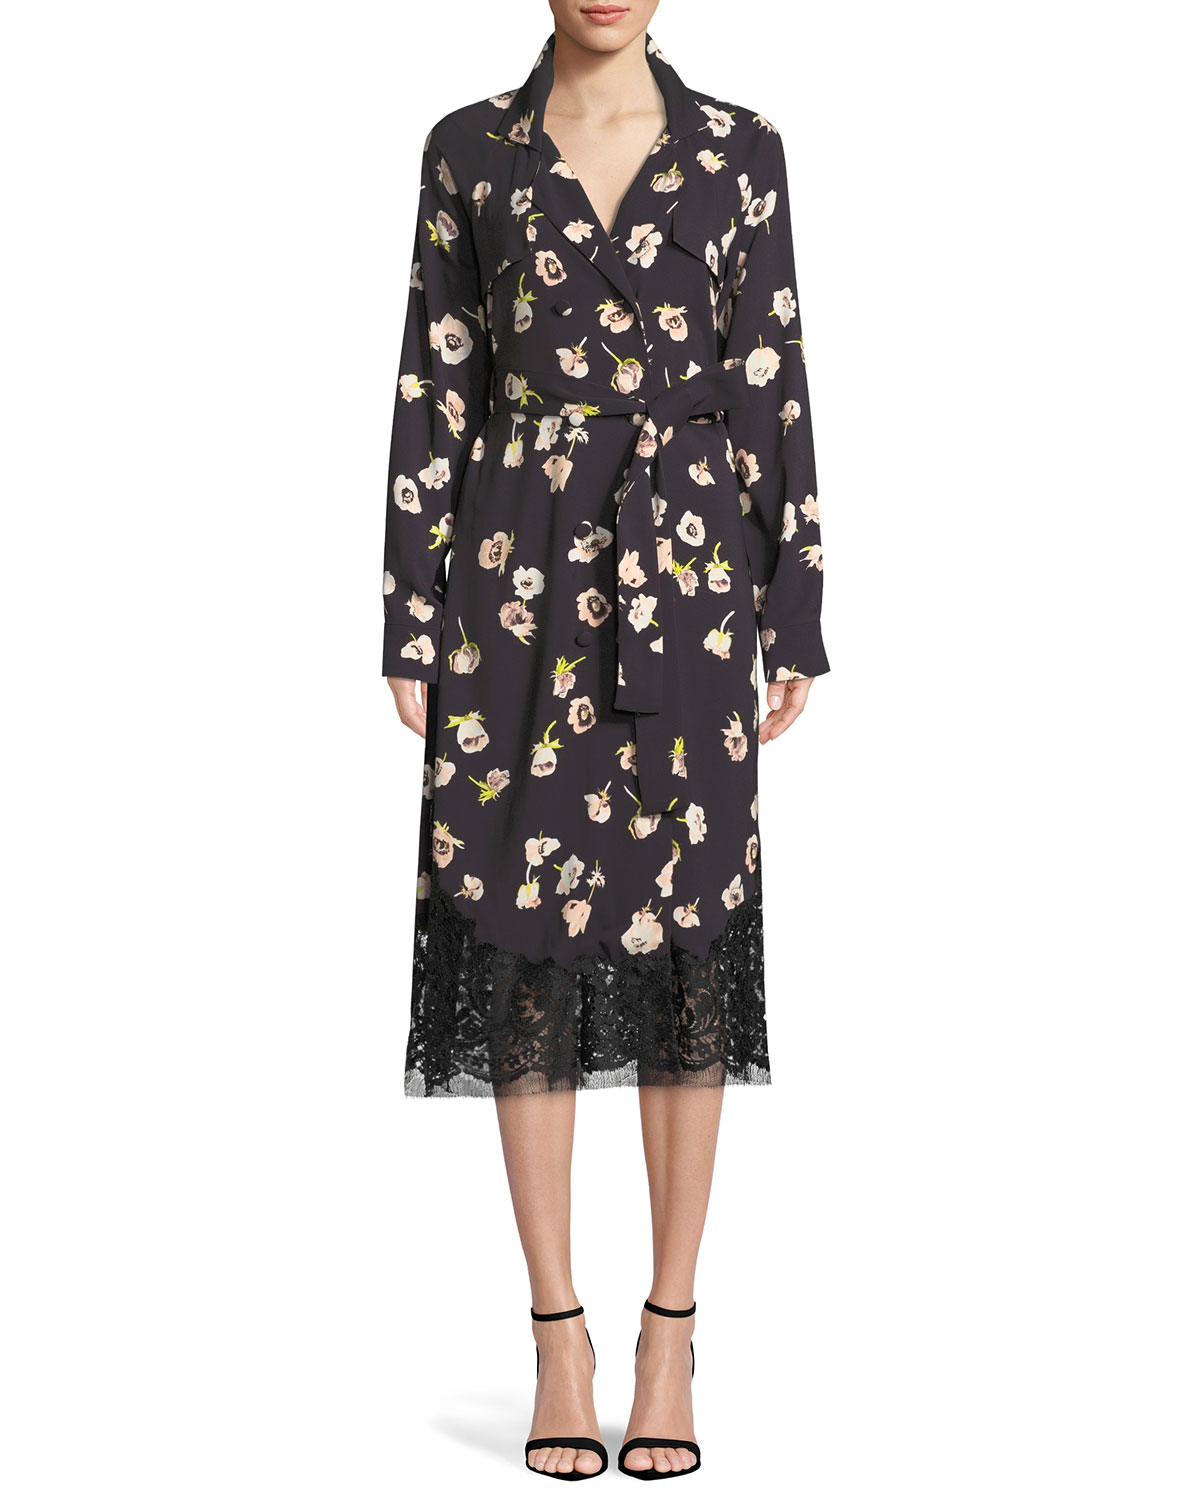 Double-Breasted Floral-Print Wrap Dress With Lace Hem in Black